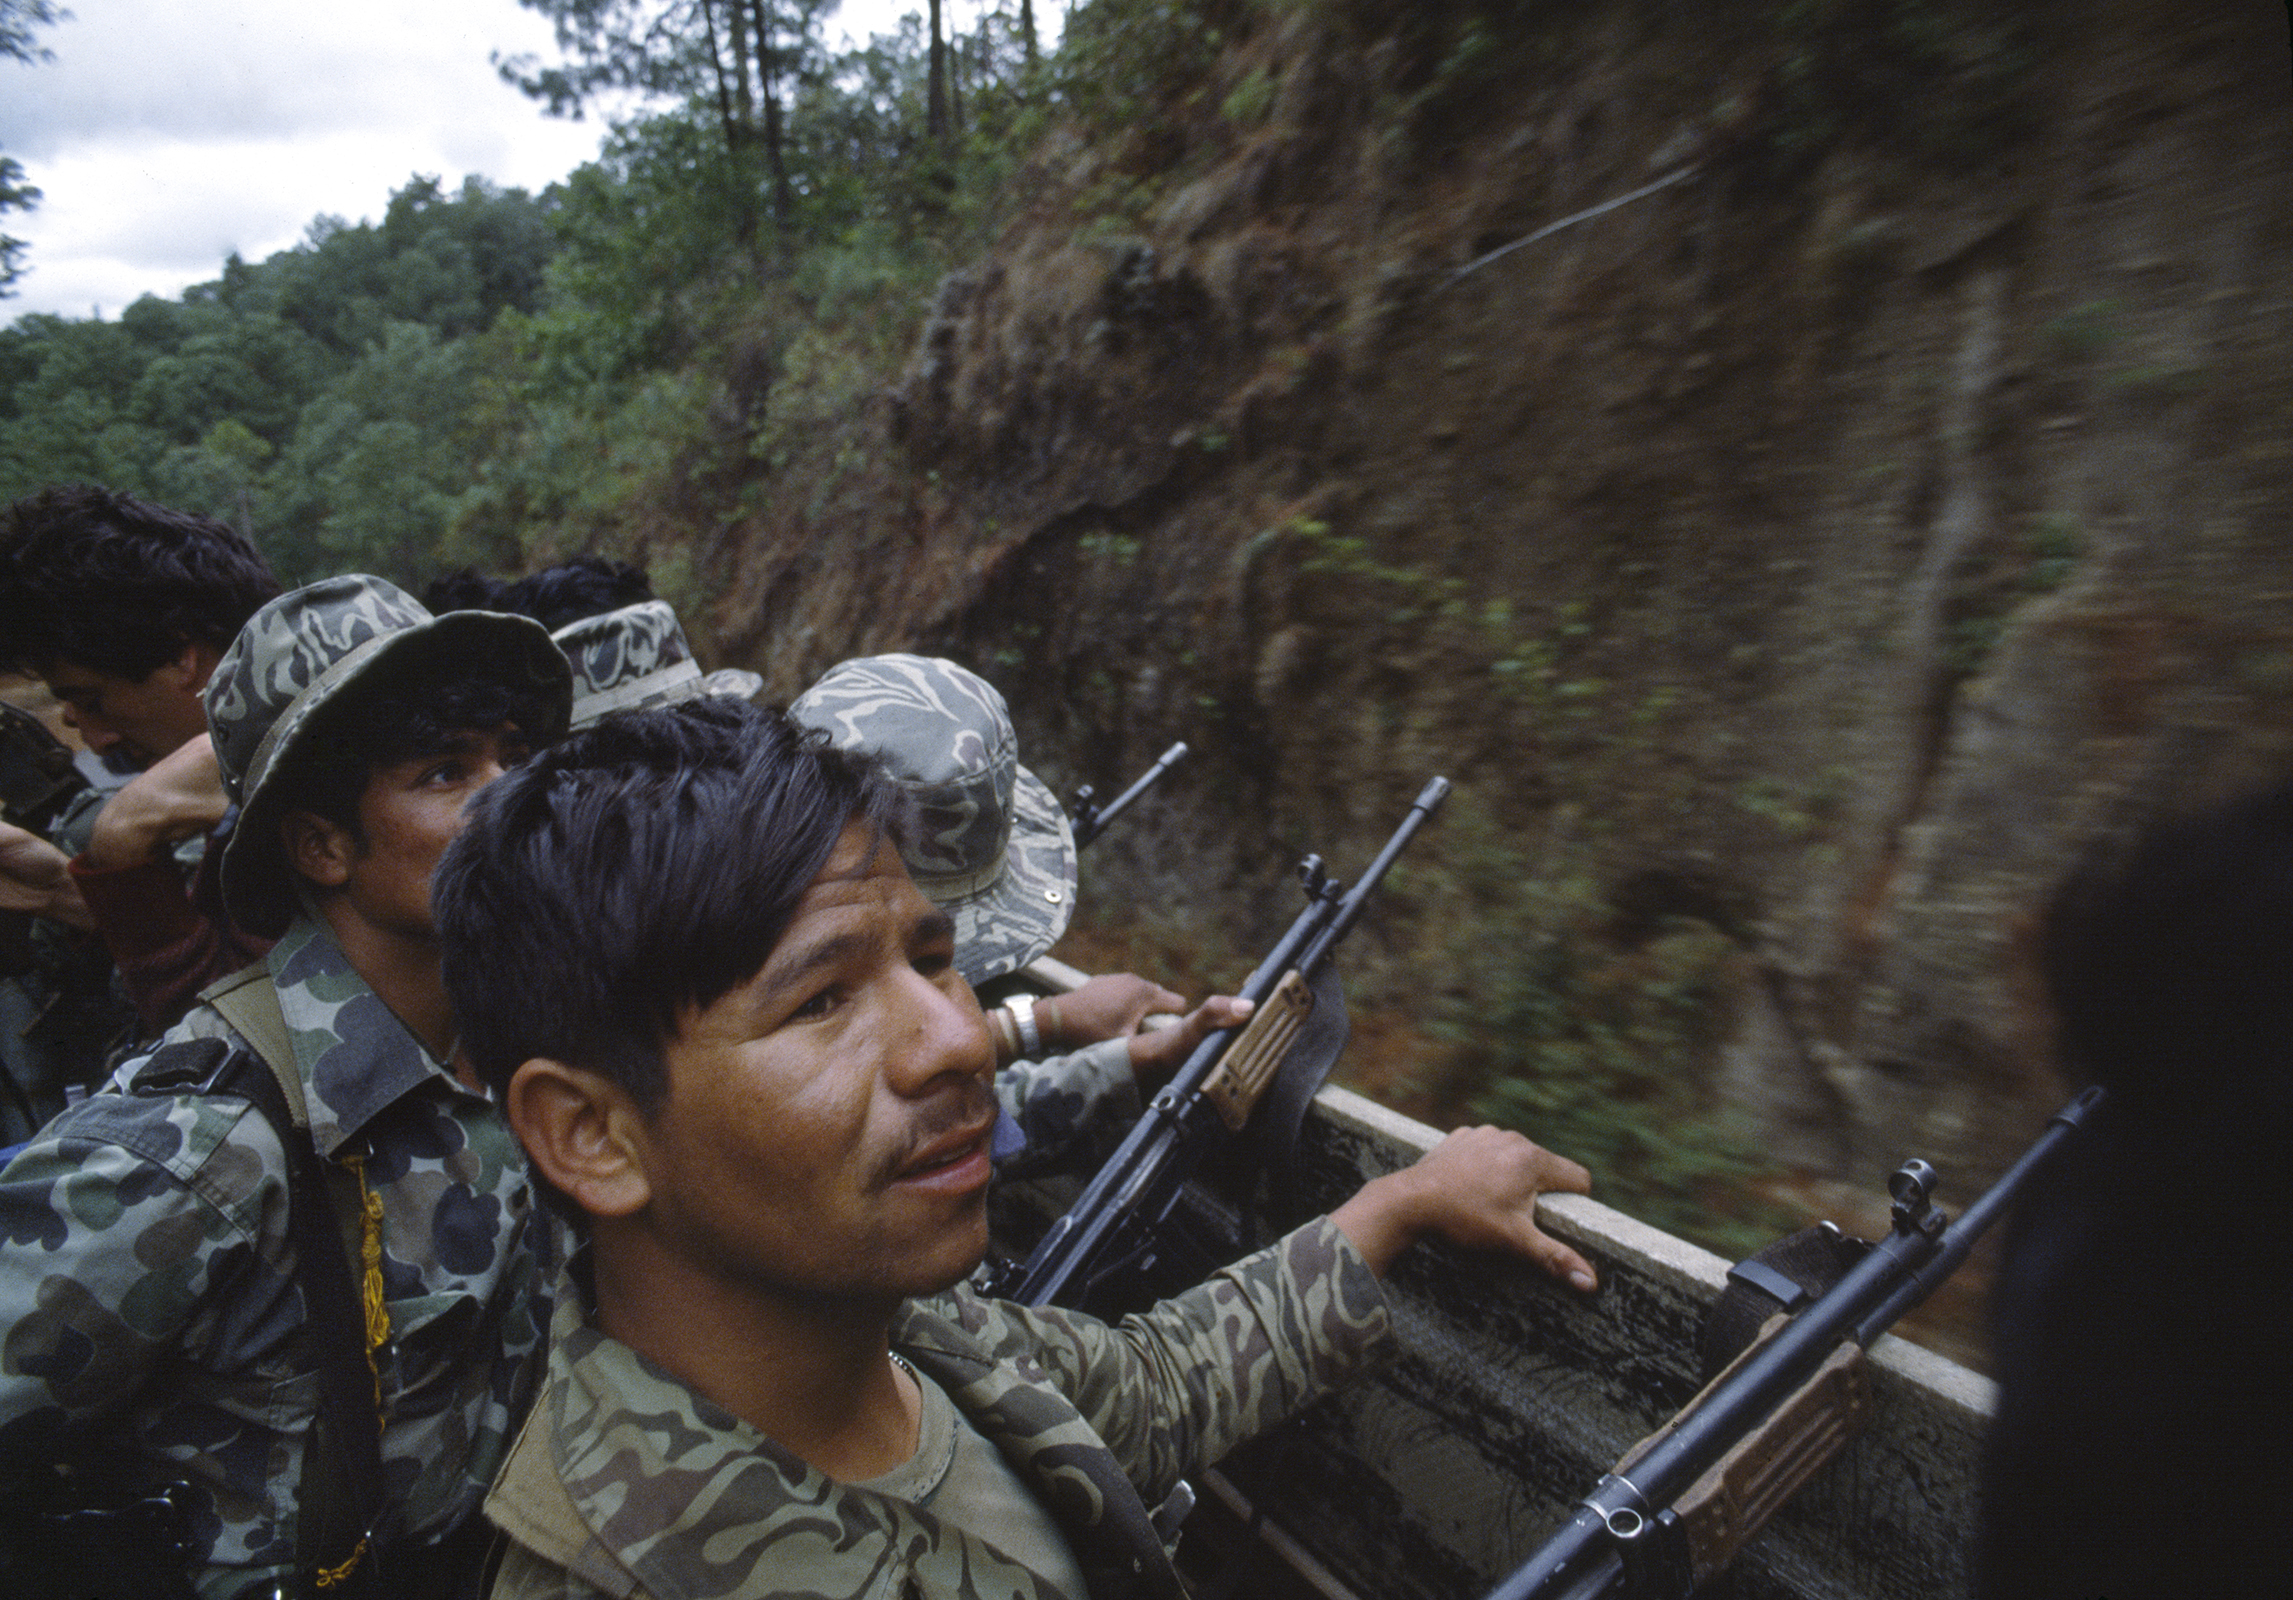 Guatemalan army soldiers armed with Israeli-supplied Galil assault rifles travel in a U.S. manufactured troop transport through possible guerrilla ambush terrain outside of Santa Cruz del Quiché on February 1, 1982. Many army officers had counterinsurgency training given by U.S. Army instructors at the School of the Americas in both the Panama Canal Zone and later in Fort Benning, Georgia.